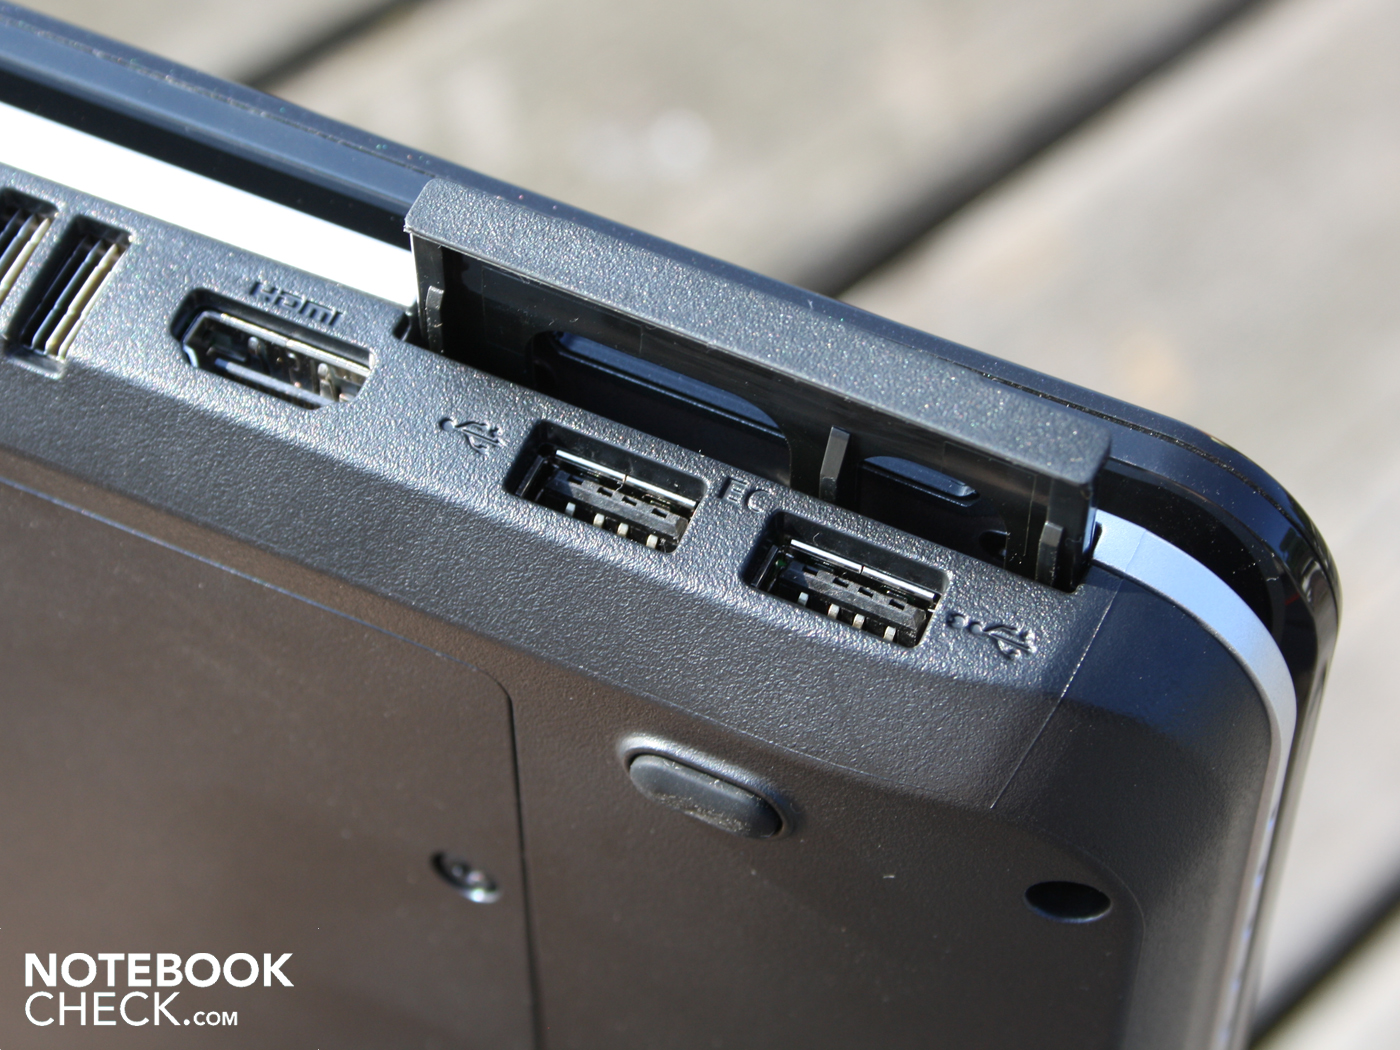 Expansion slot notebook